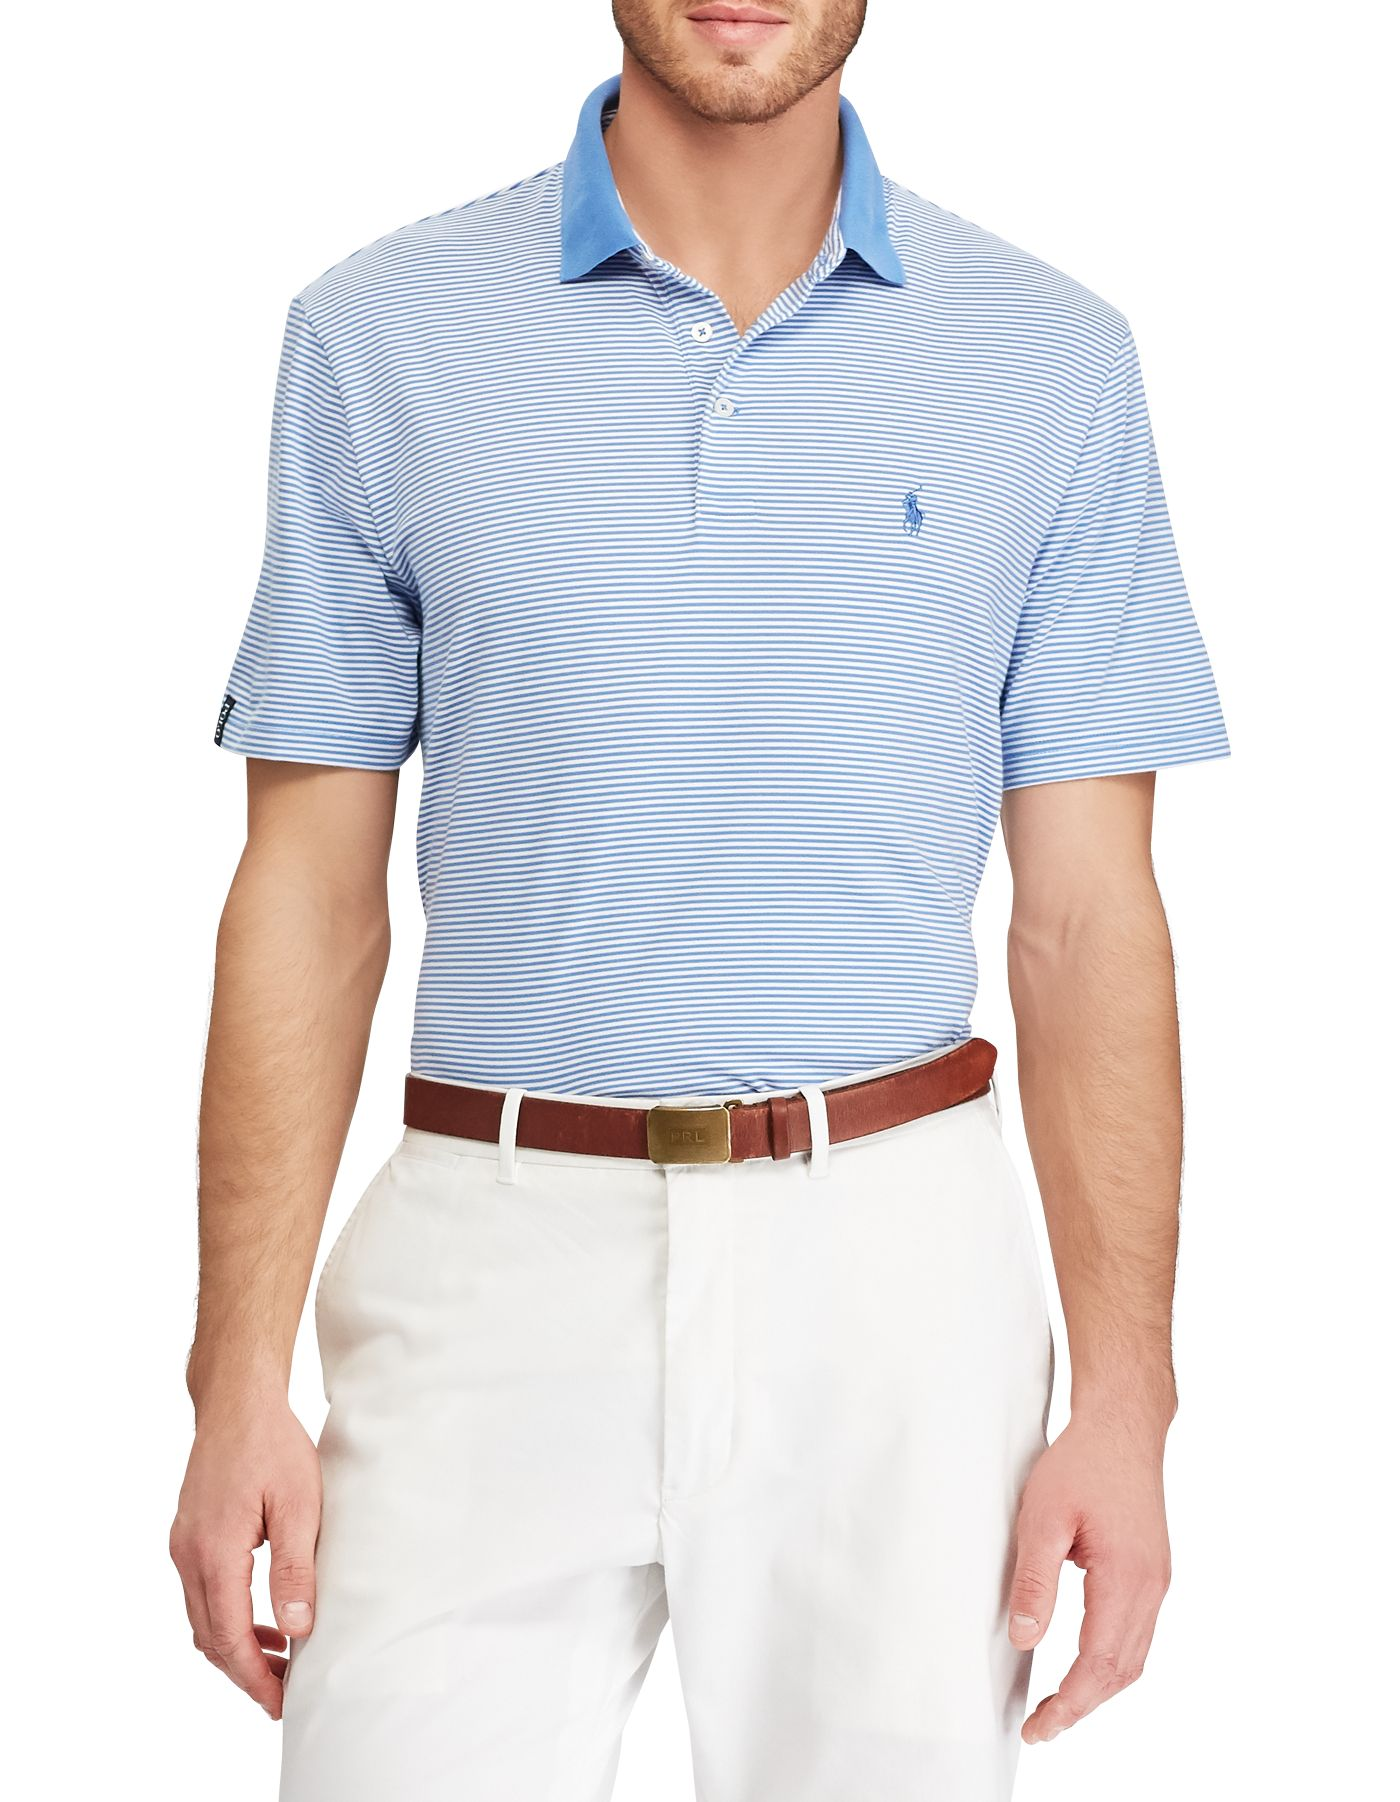 Polo Golf Men's Striped Performance Lisle Golf Polo